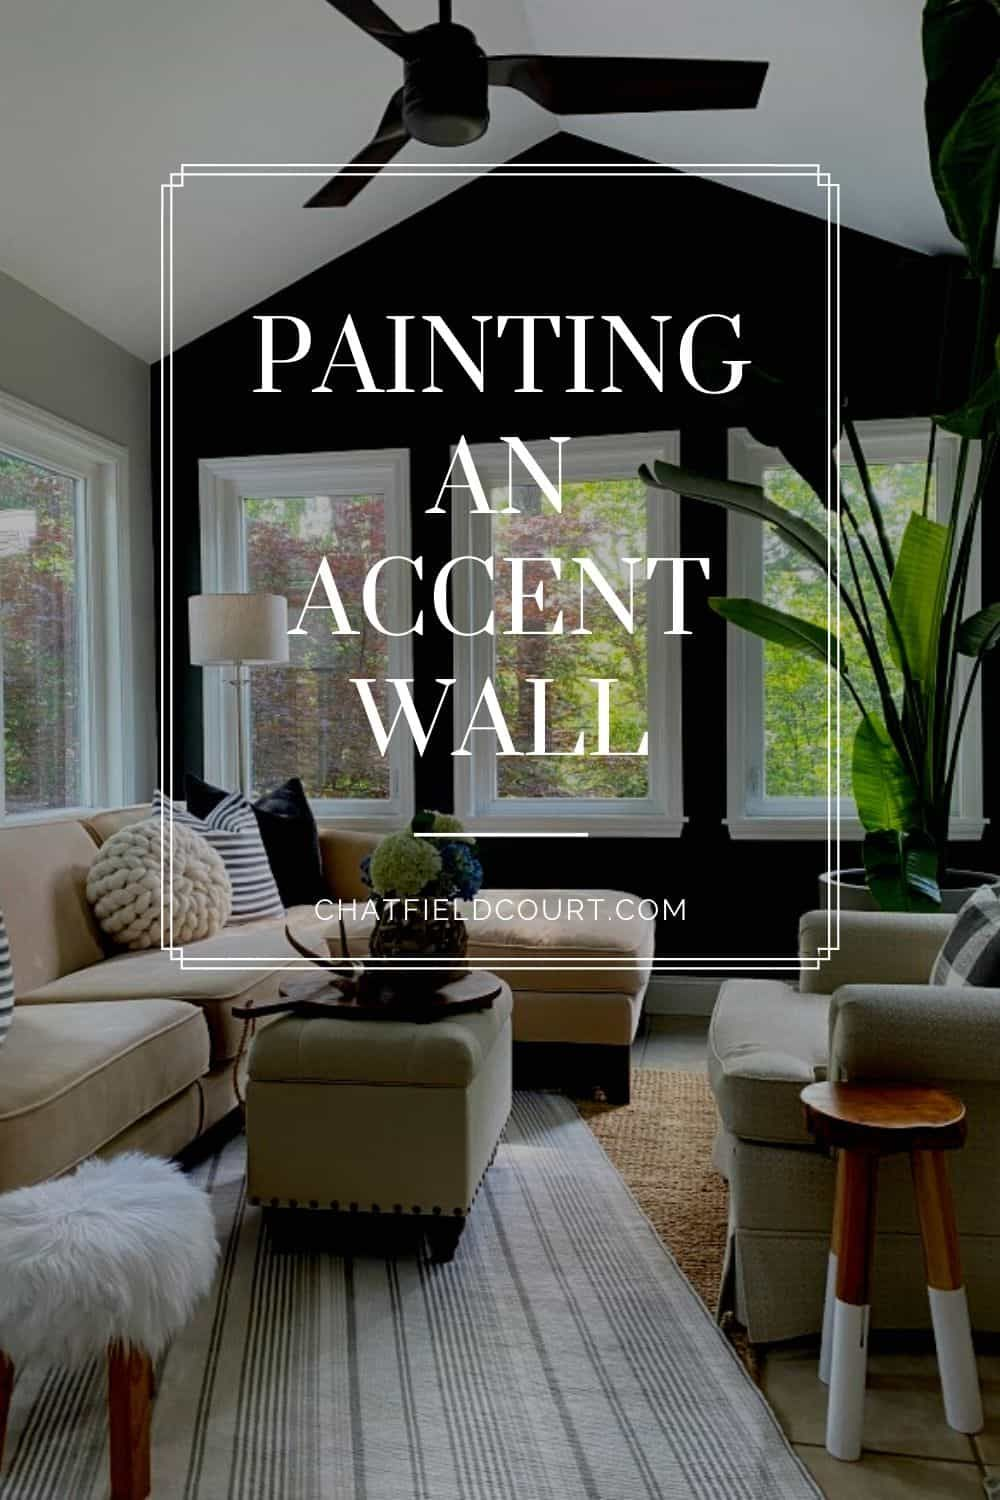 Painting An Accent Wall In The Sunroom In 2020 Accent Wall Paint Accent Wall Wrought Iron Accents